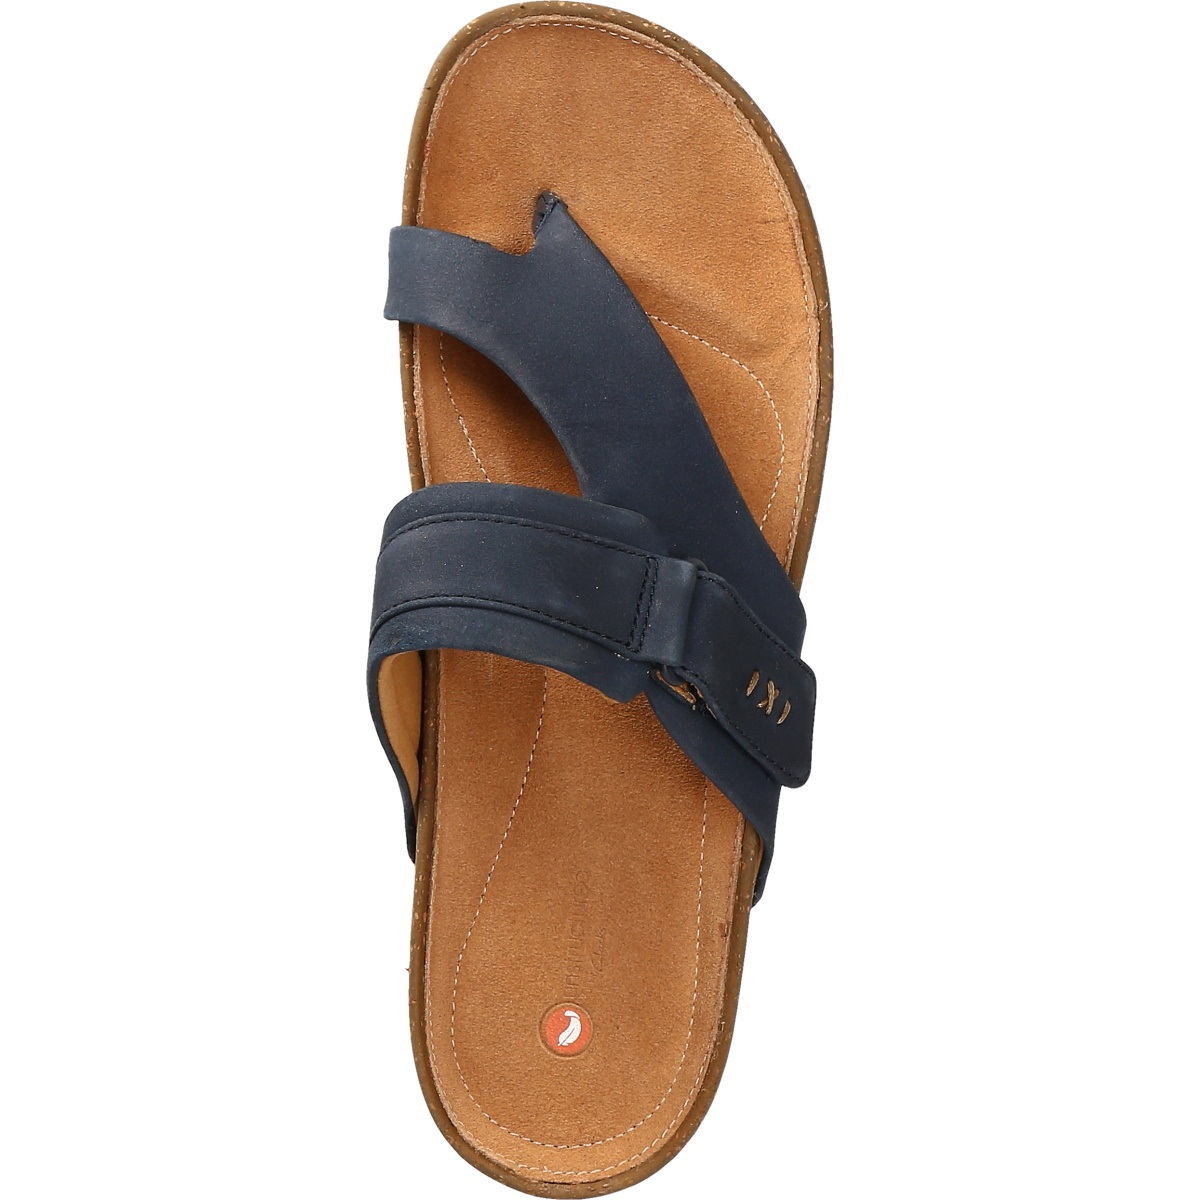 987eaa04d8b Clarks Rosilla Durham 26132800 4 Women s shoes Sandals buy shoes at ...